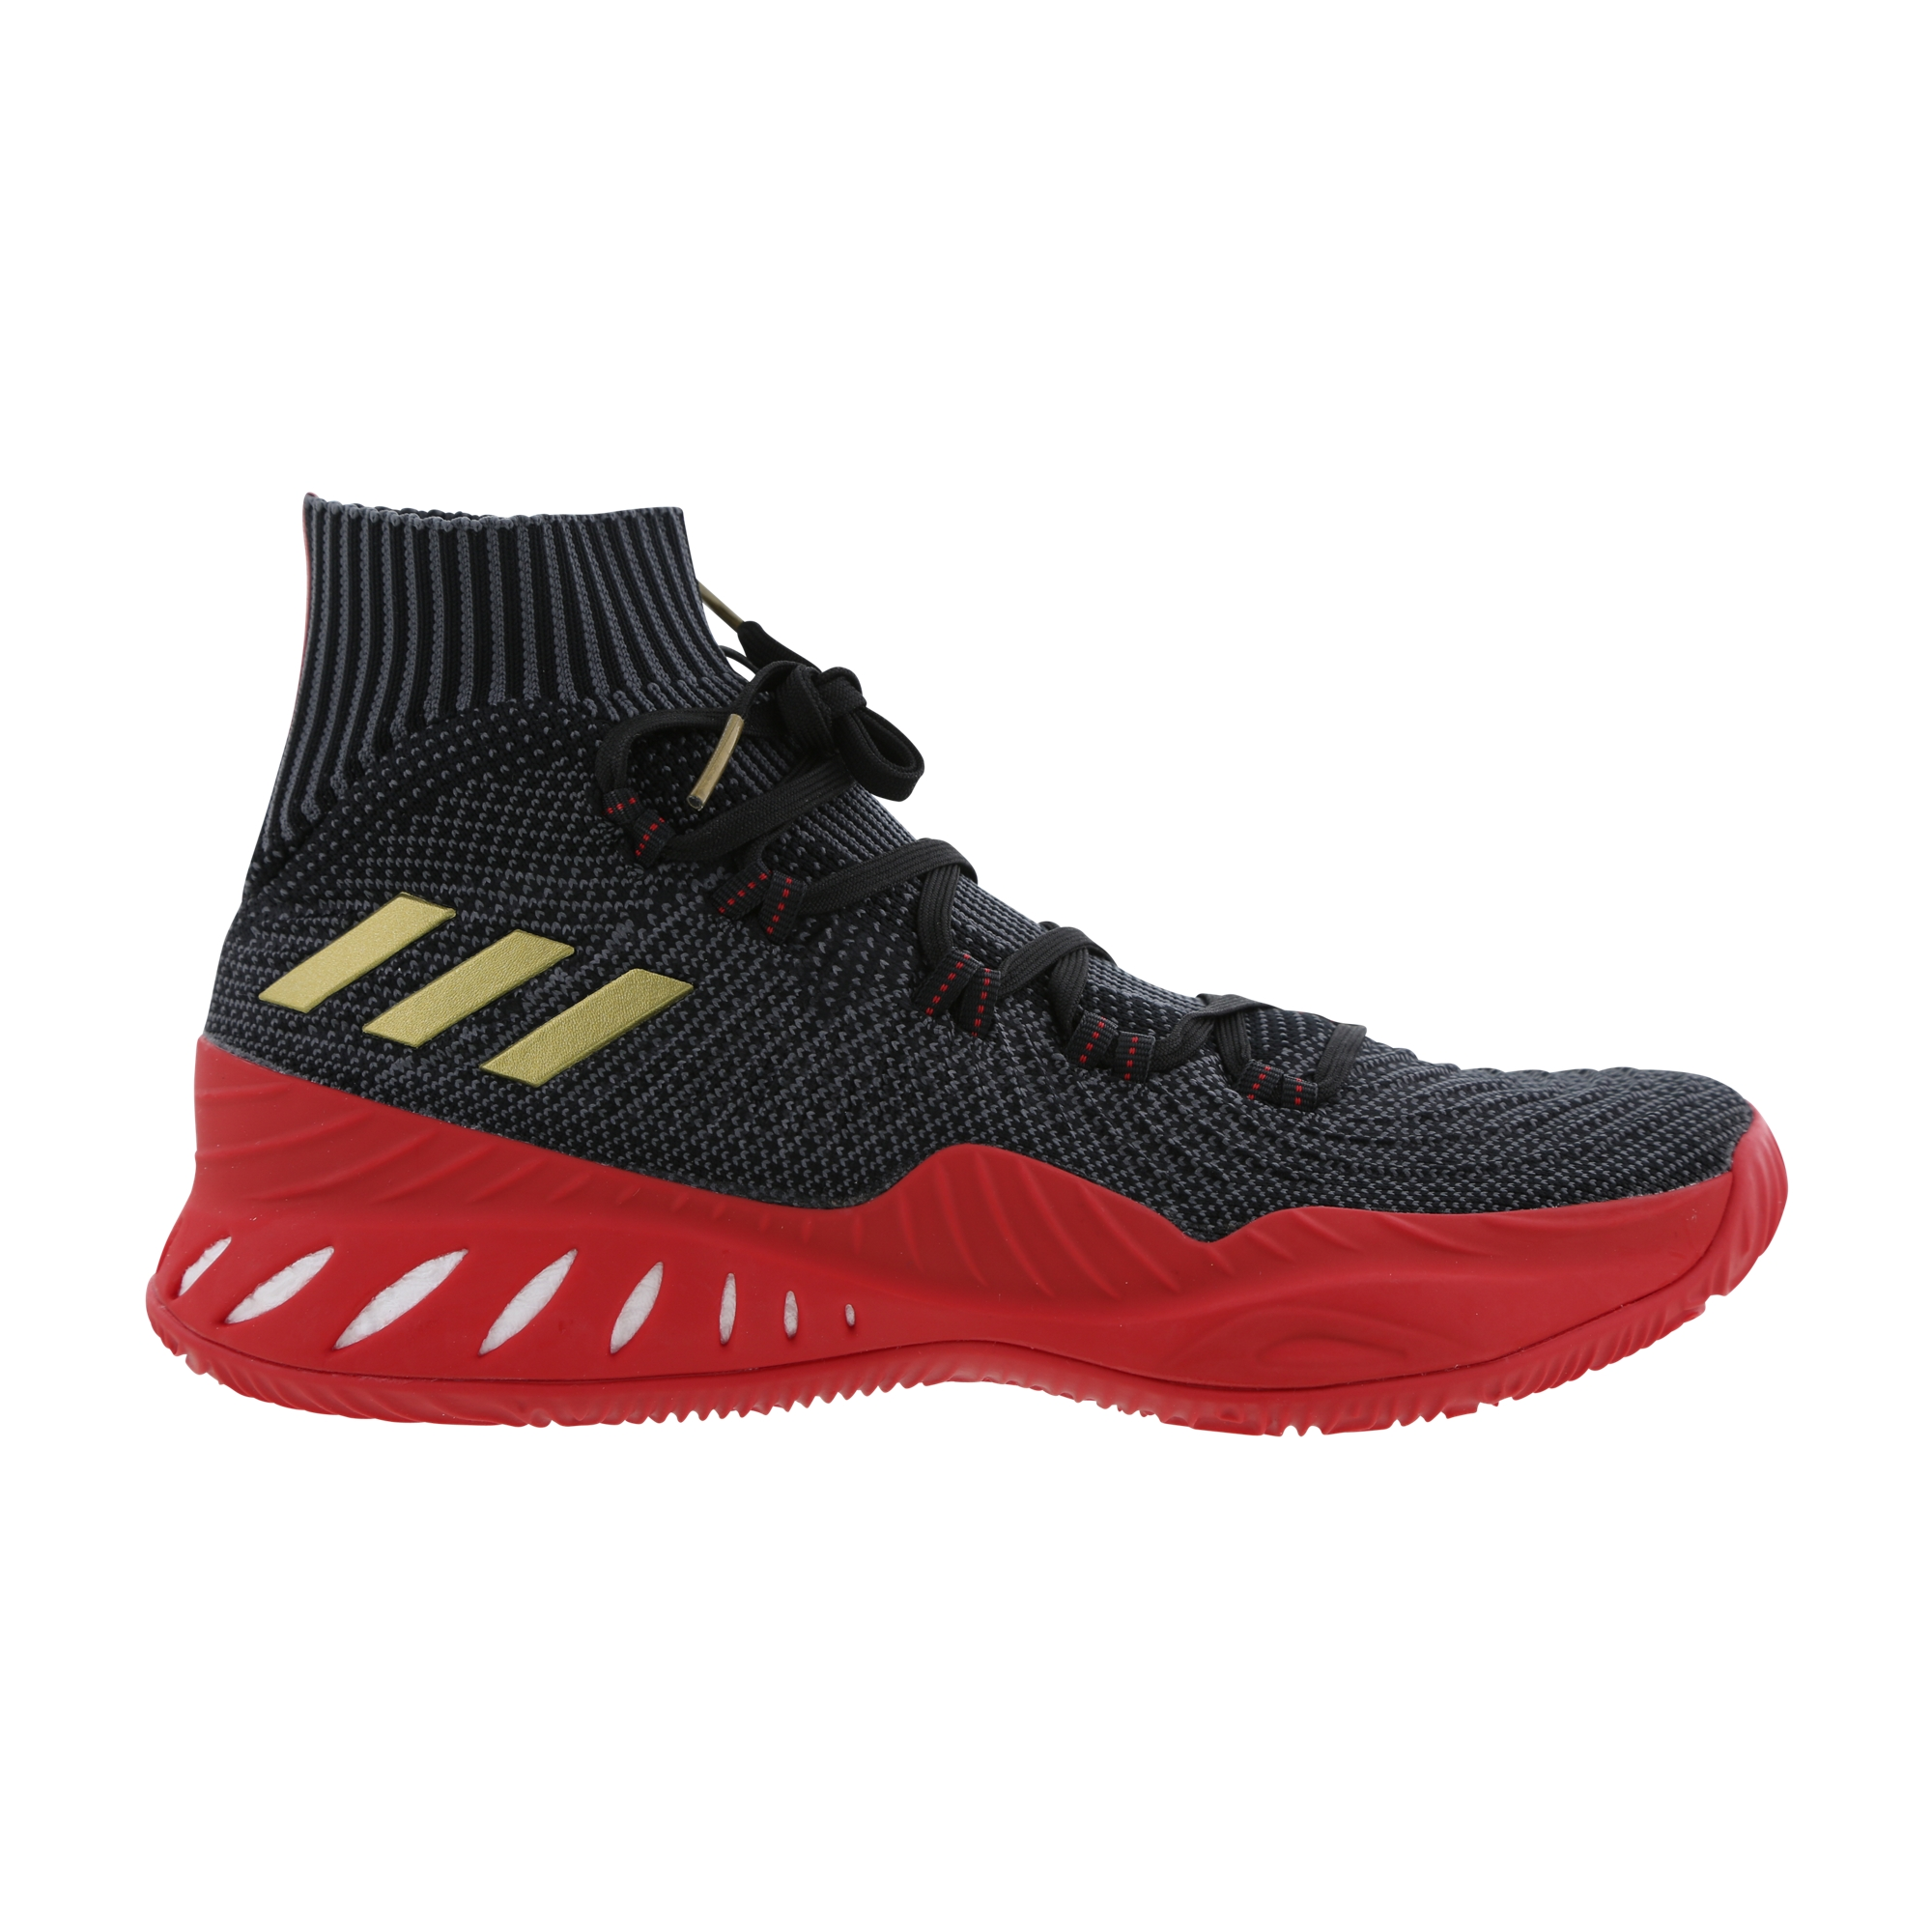 cfc22a2cbfe adidas Crazy Explosive 2017 black gold scarlet 1 · adidas   Kicks On Court  ...